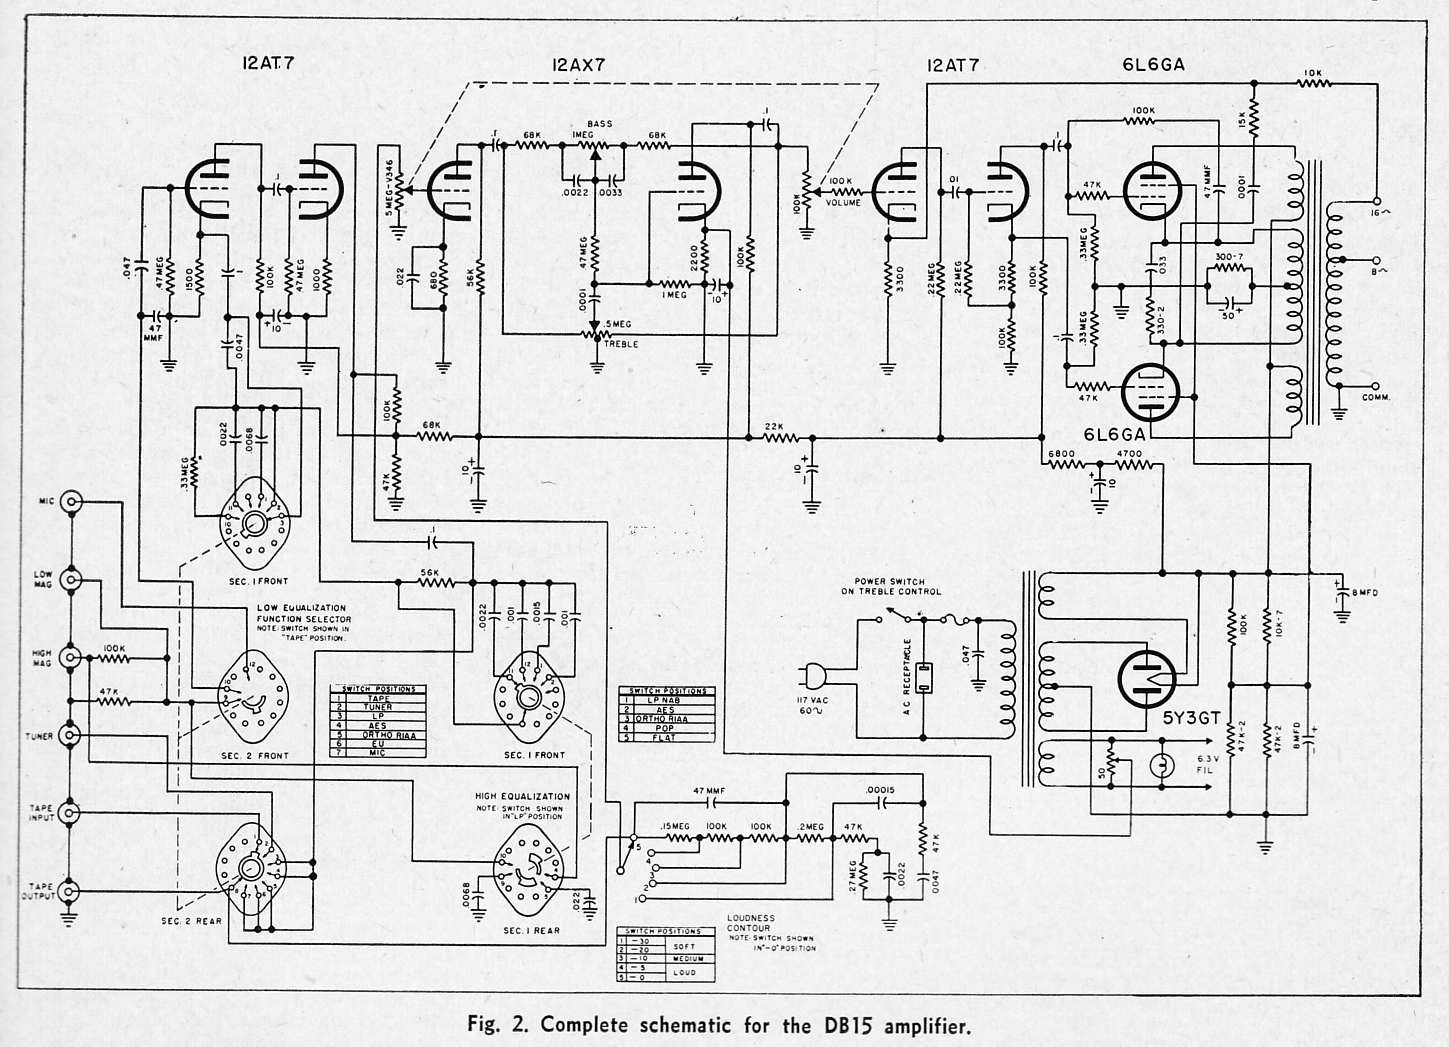 bogen paging system wiring diagram Download-Bogen Paging System Wiring Diagram Fresh May 2011 18-g